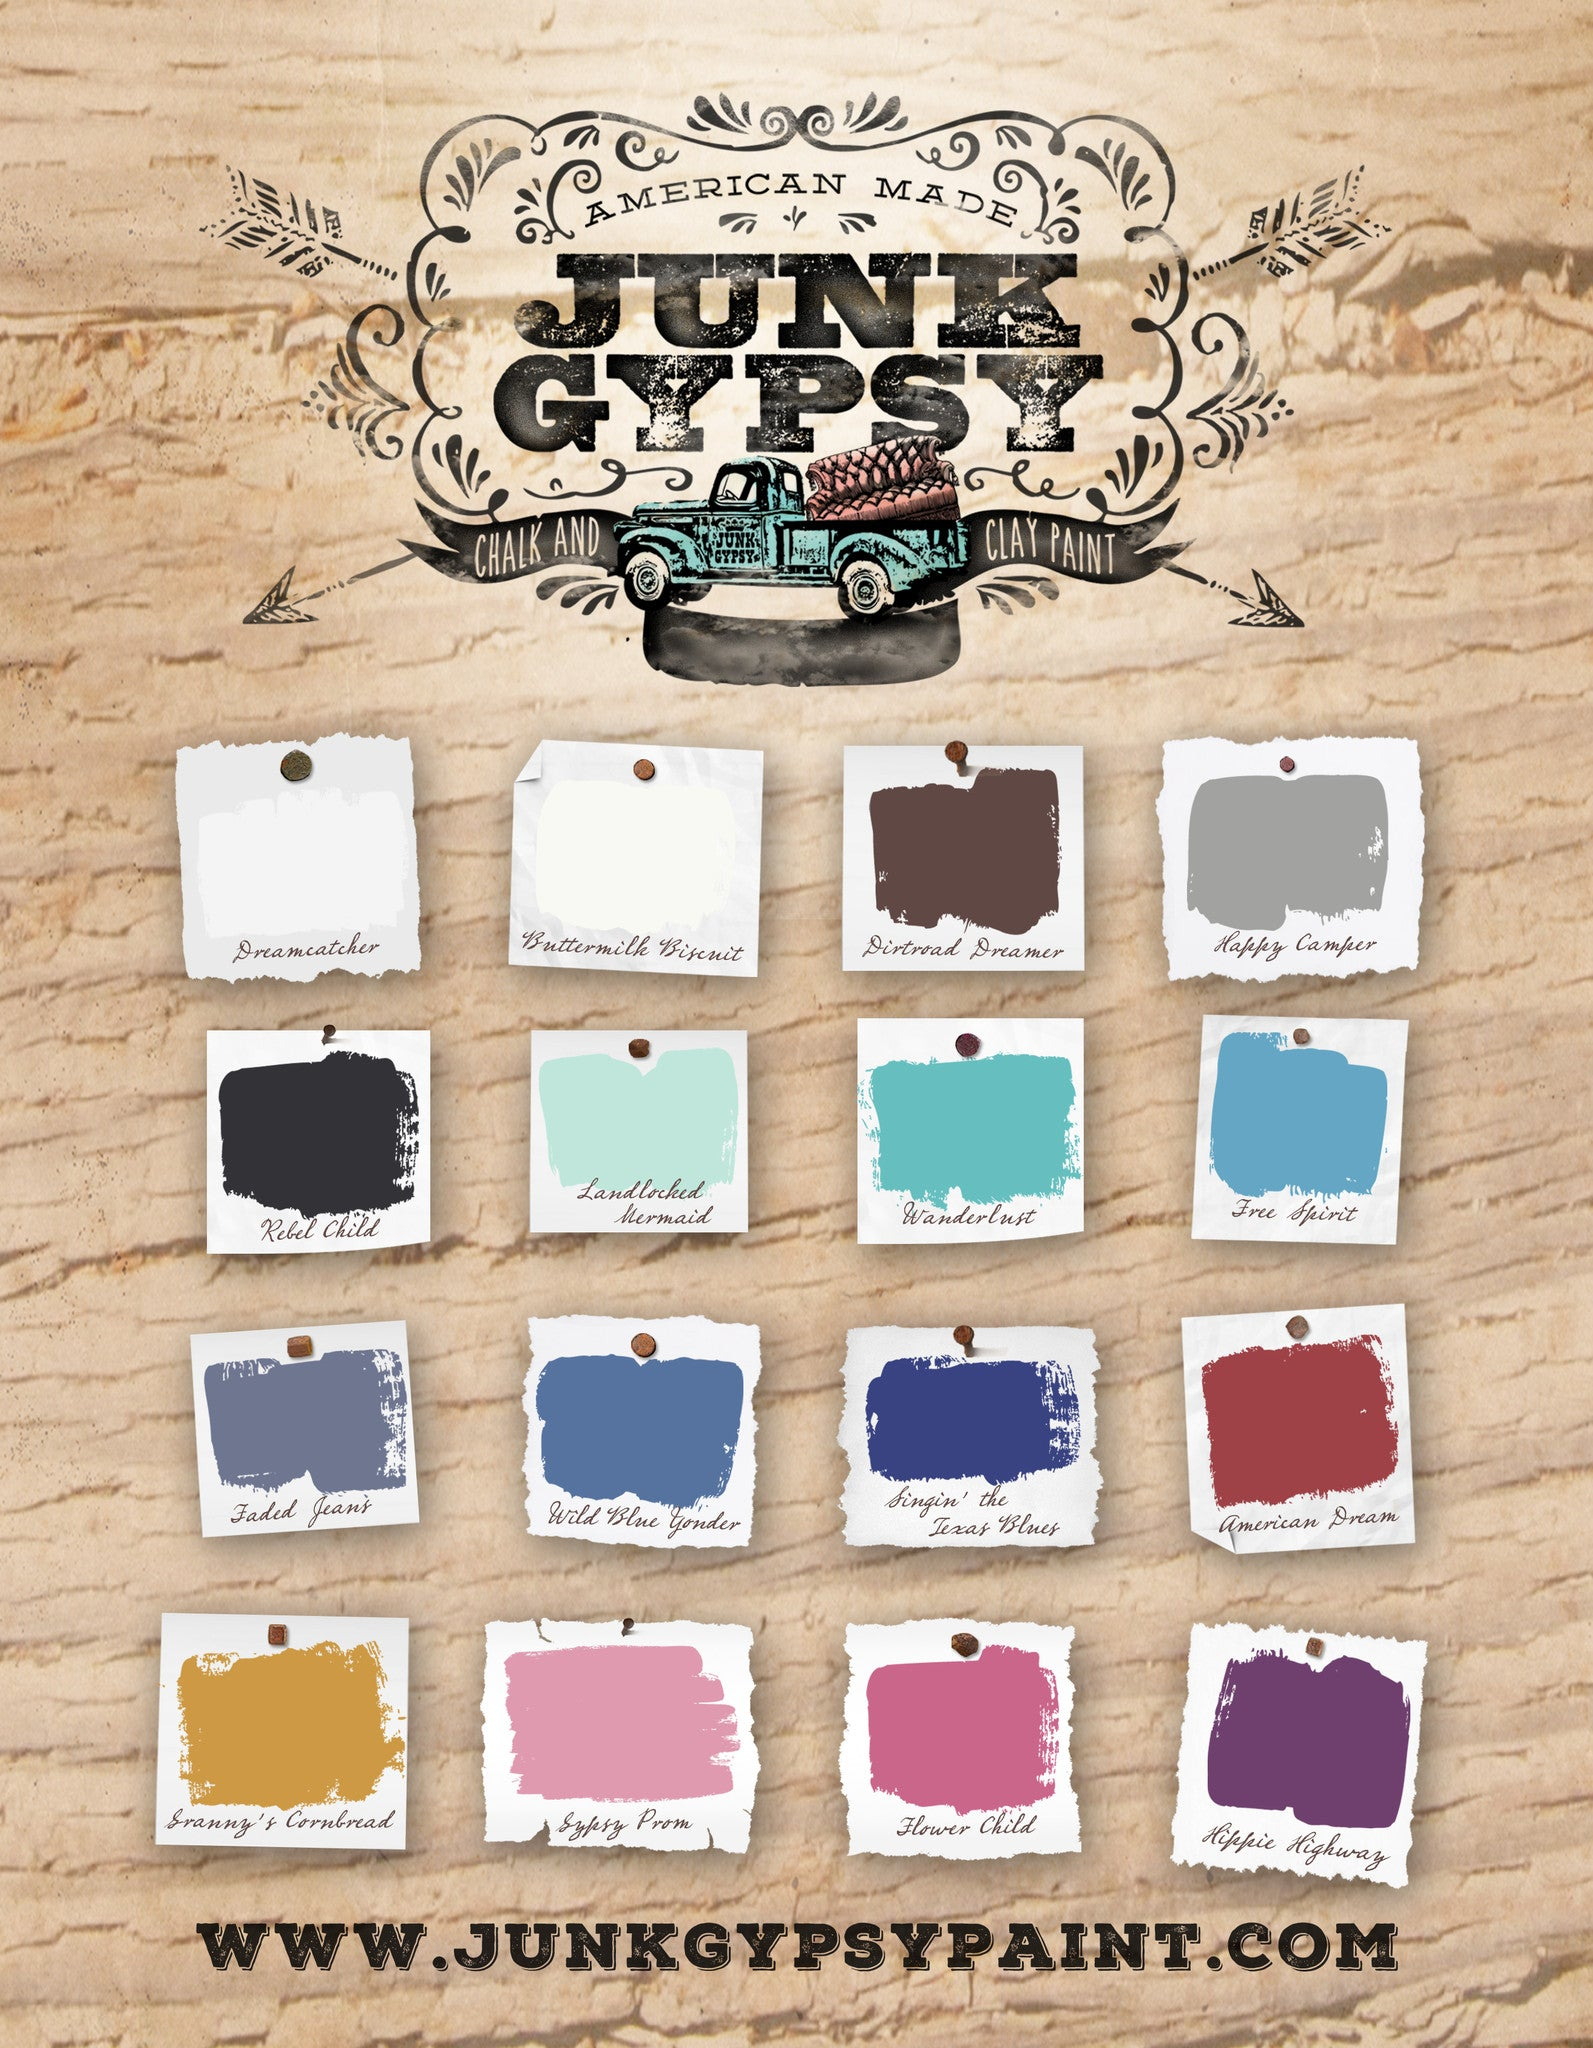 Junk Gypsy Paint - Buttermilk Biscuit - 16oz - Chalk and Clay Paint